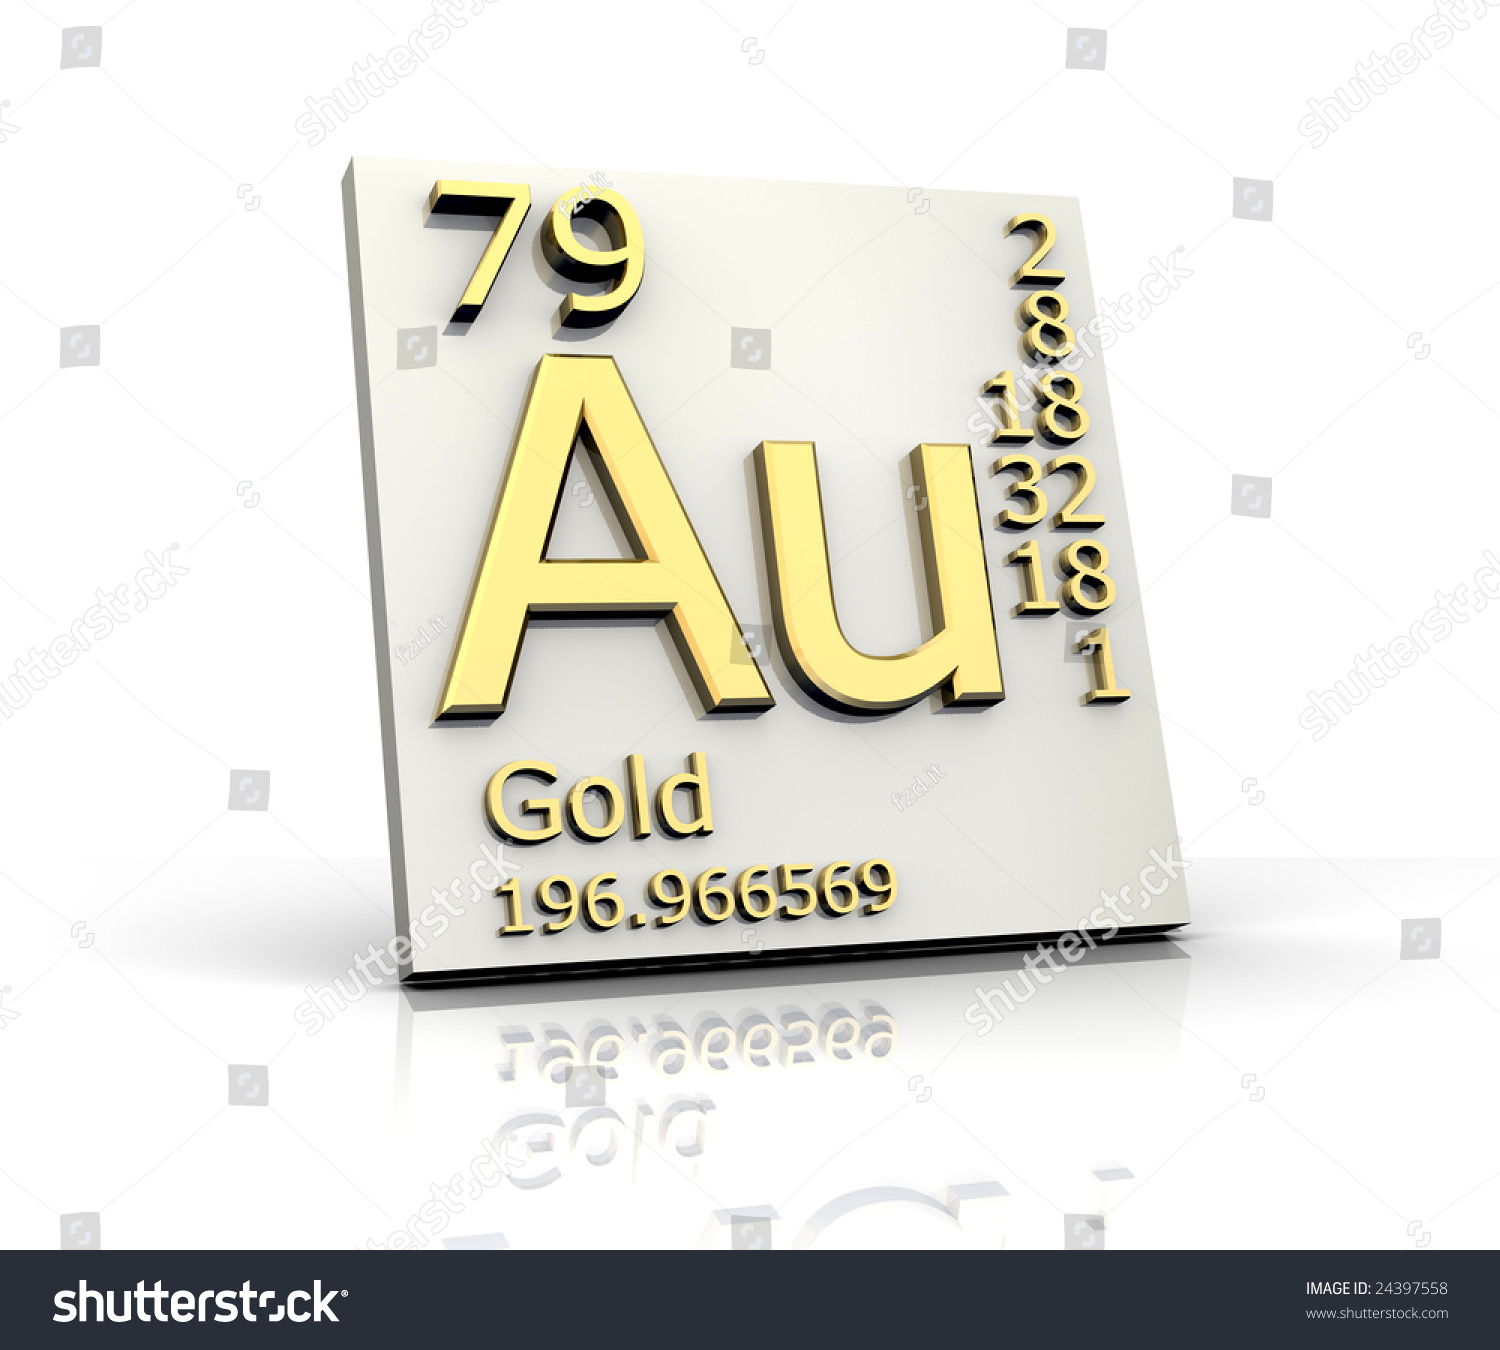 Gold form periodic table elements stock illustration 24397558 gold form periodic table of elements gamestrikefo Image collections